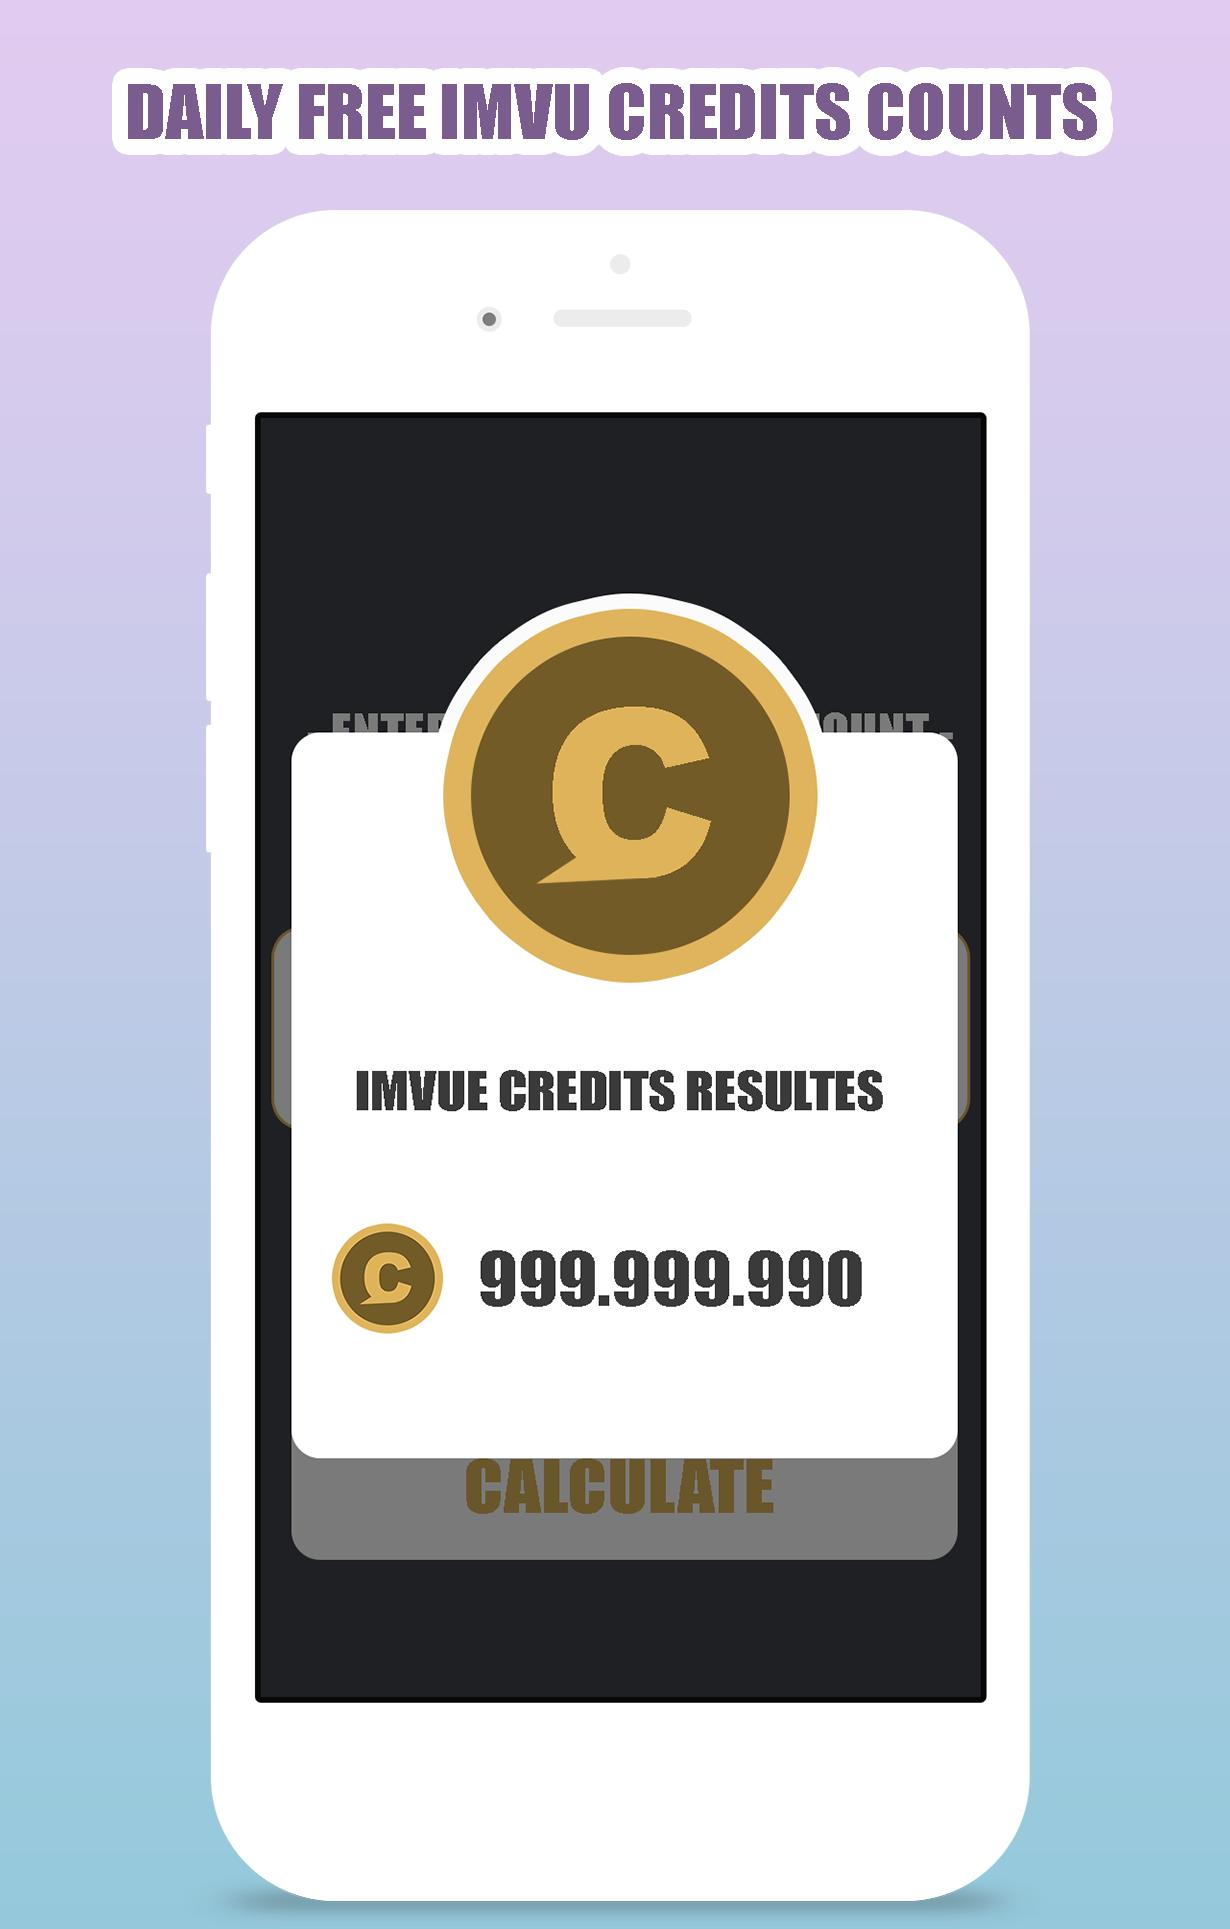 Free IMVU Credits Calculator for Android - APK Download